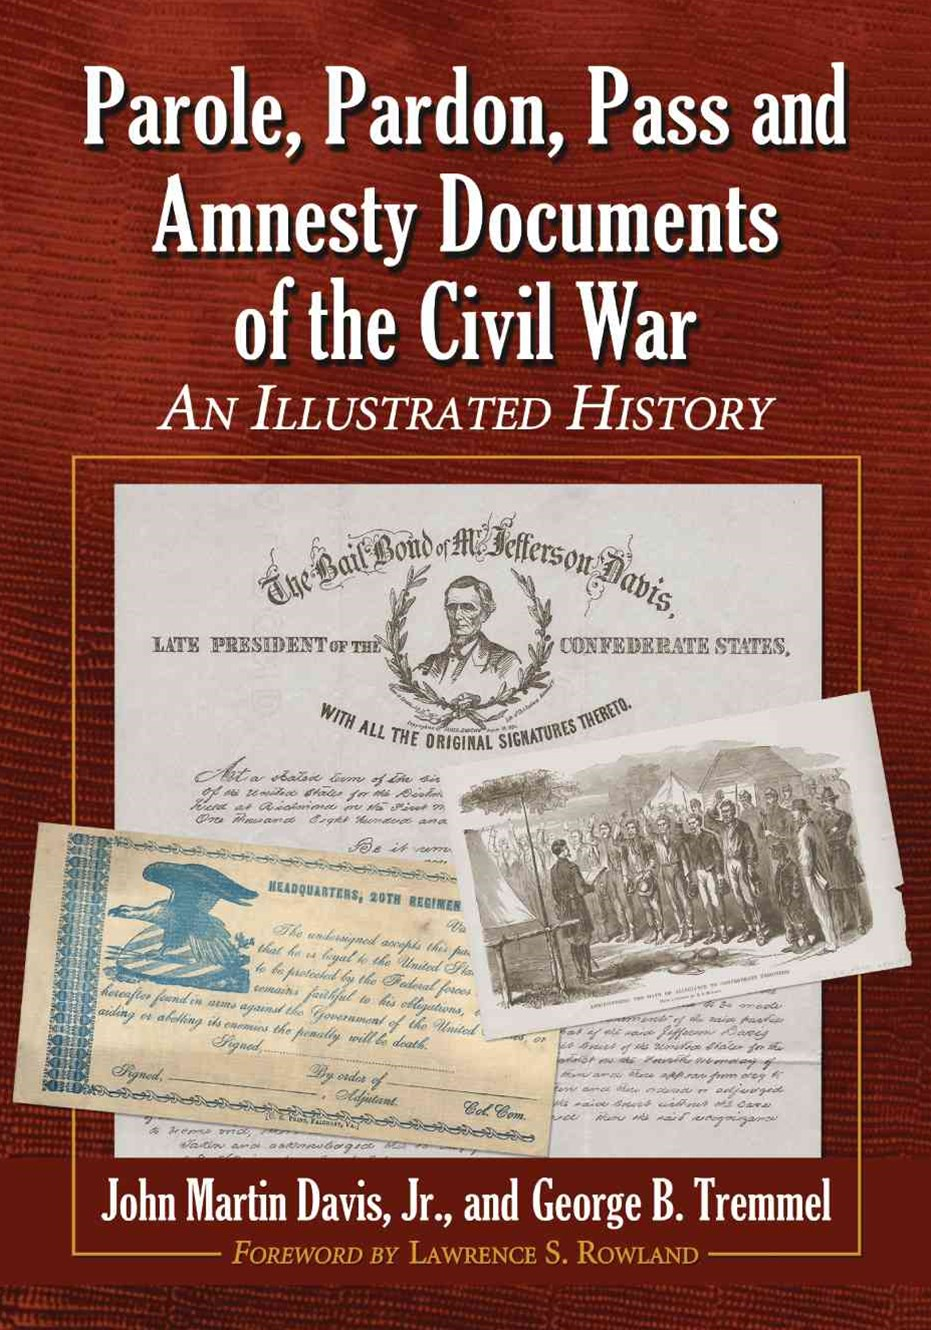 Parole, Pardon, Pass and Amnesty Documents of the Civil War